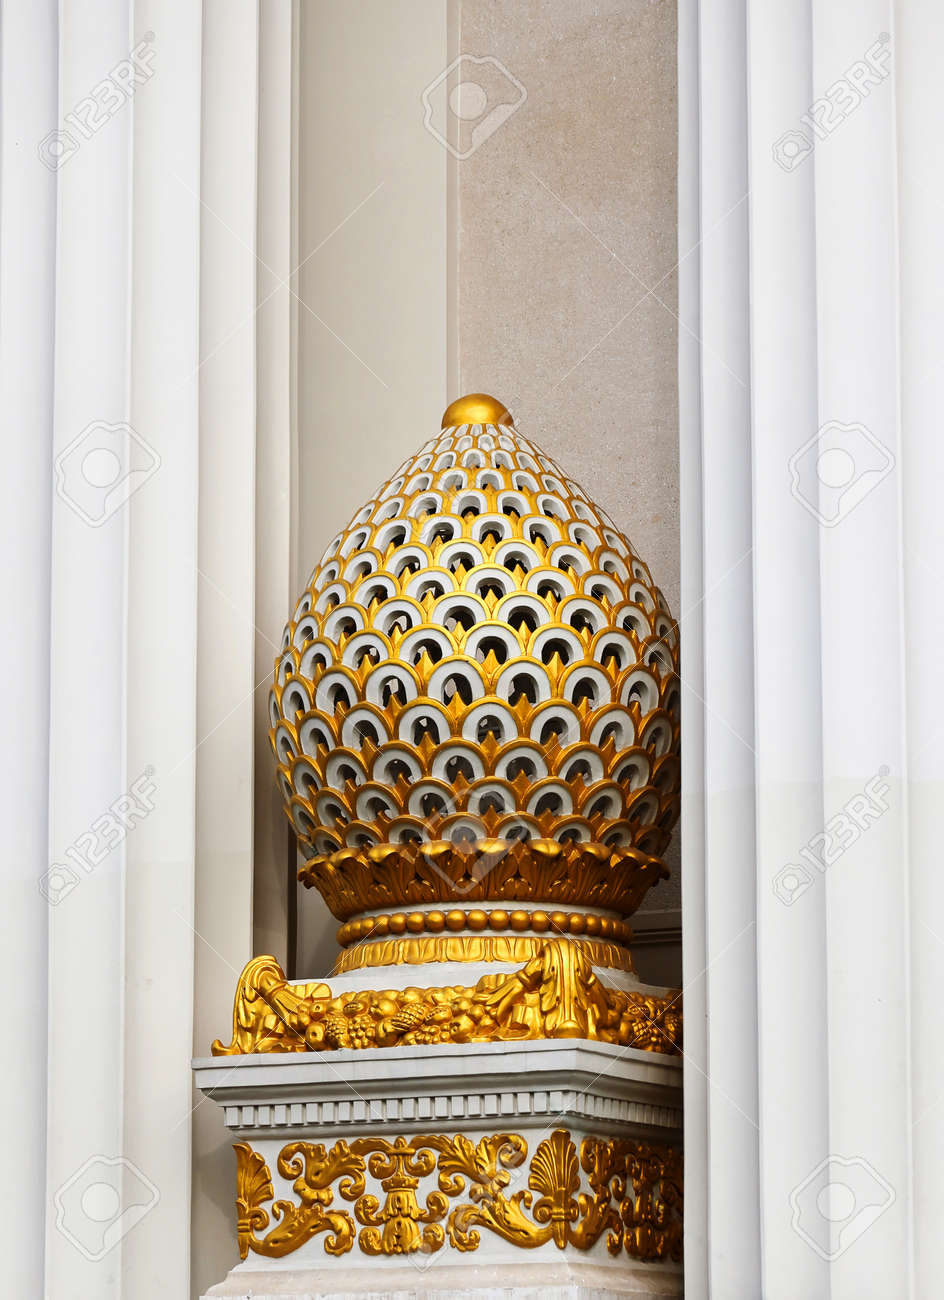 an architectural element of decoration of a historic building made of marble covered with gold - 156408654